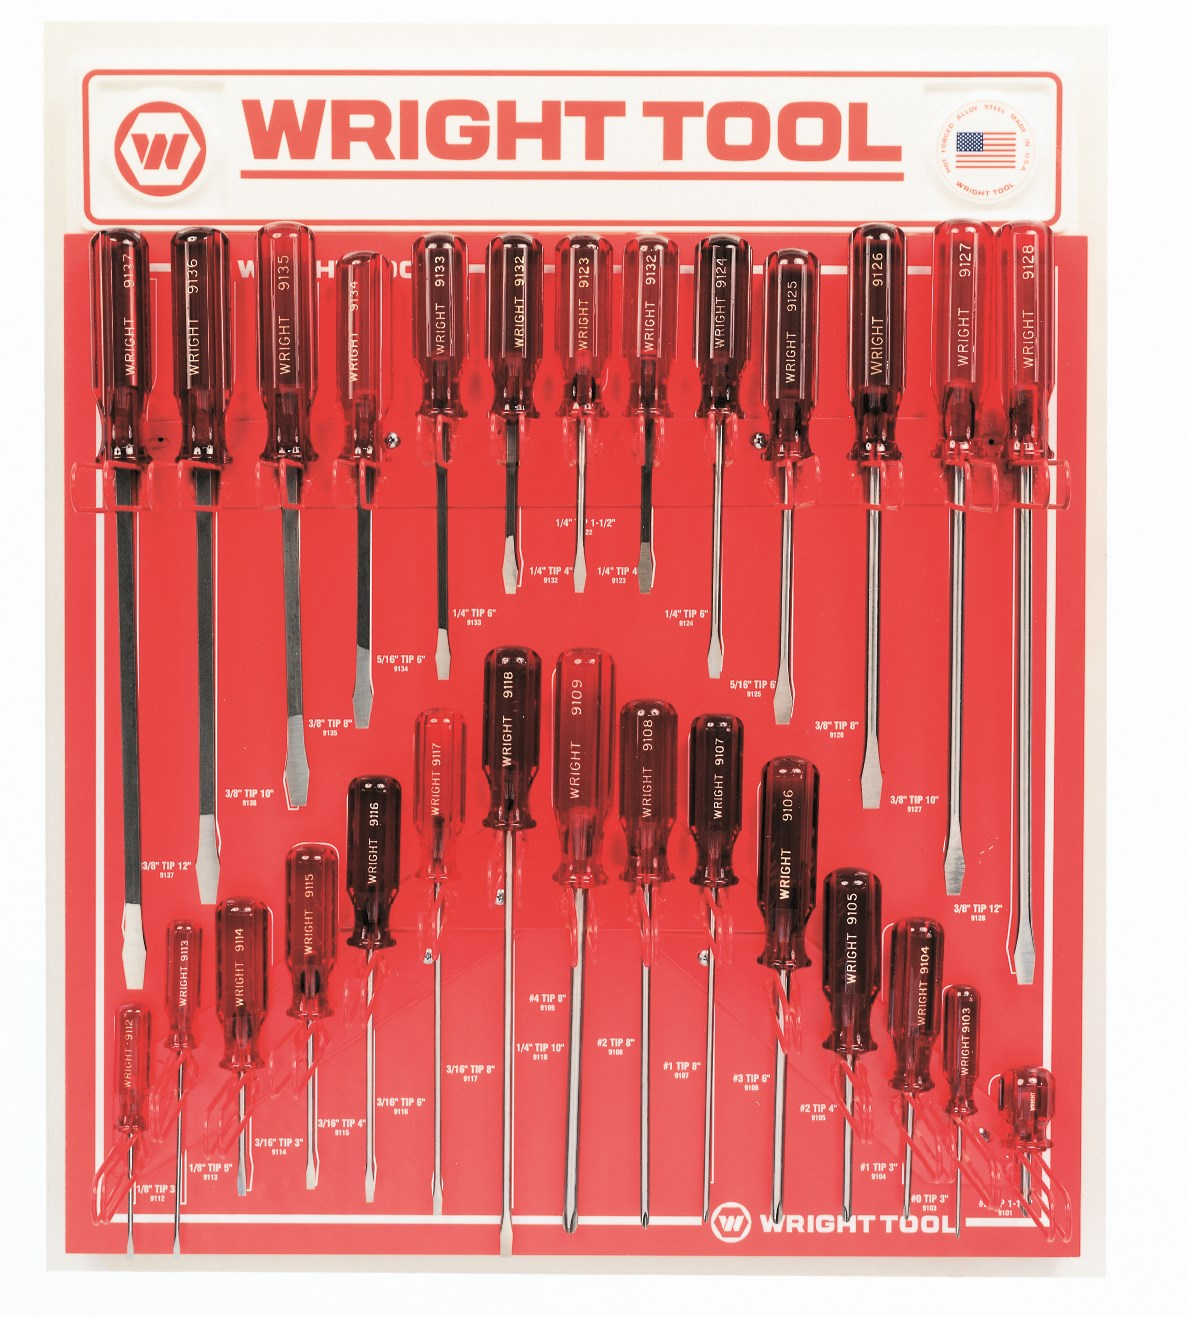 Wright Tool D973 28-Pc. Screwdriver Set - Jumbo Three Flute Ergonomic Handle